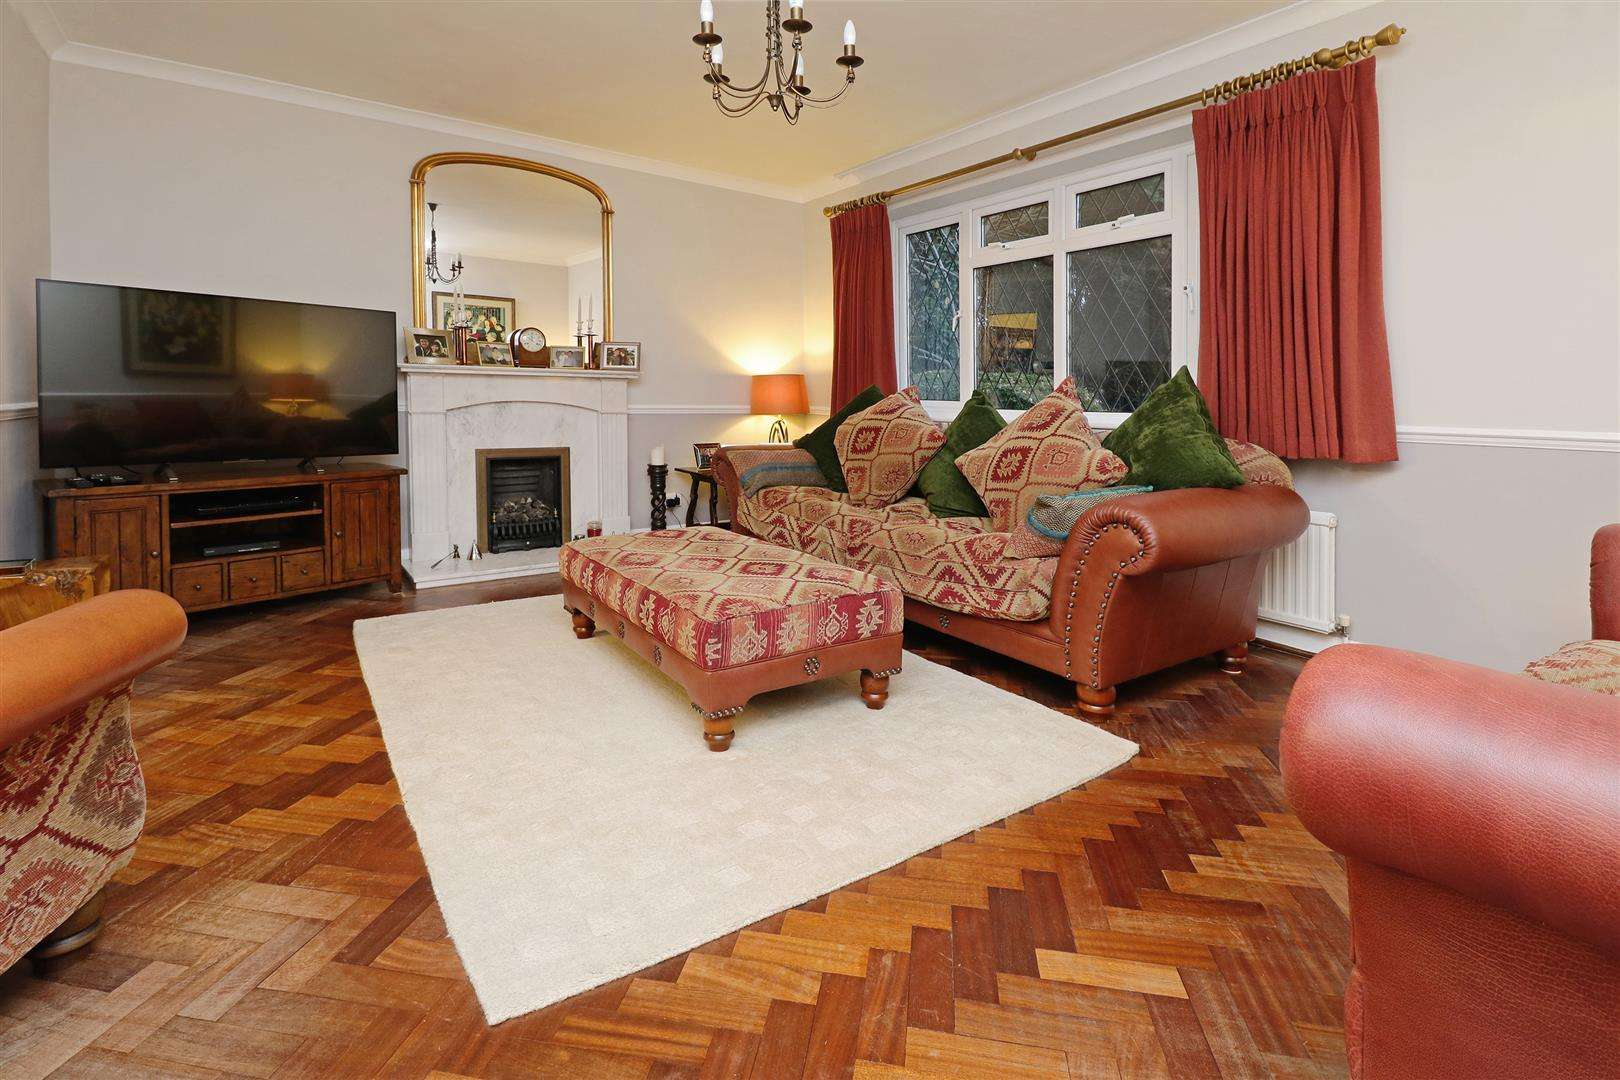 5 bed for sale - (Property Image 2)